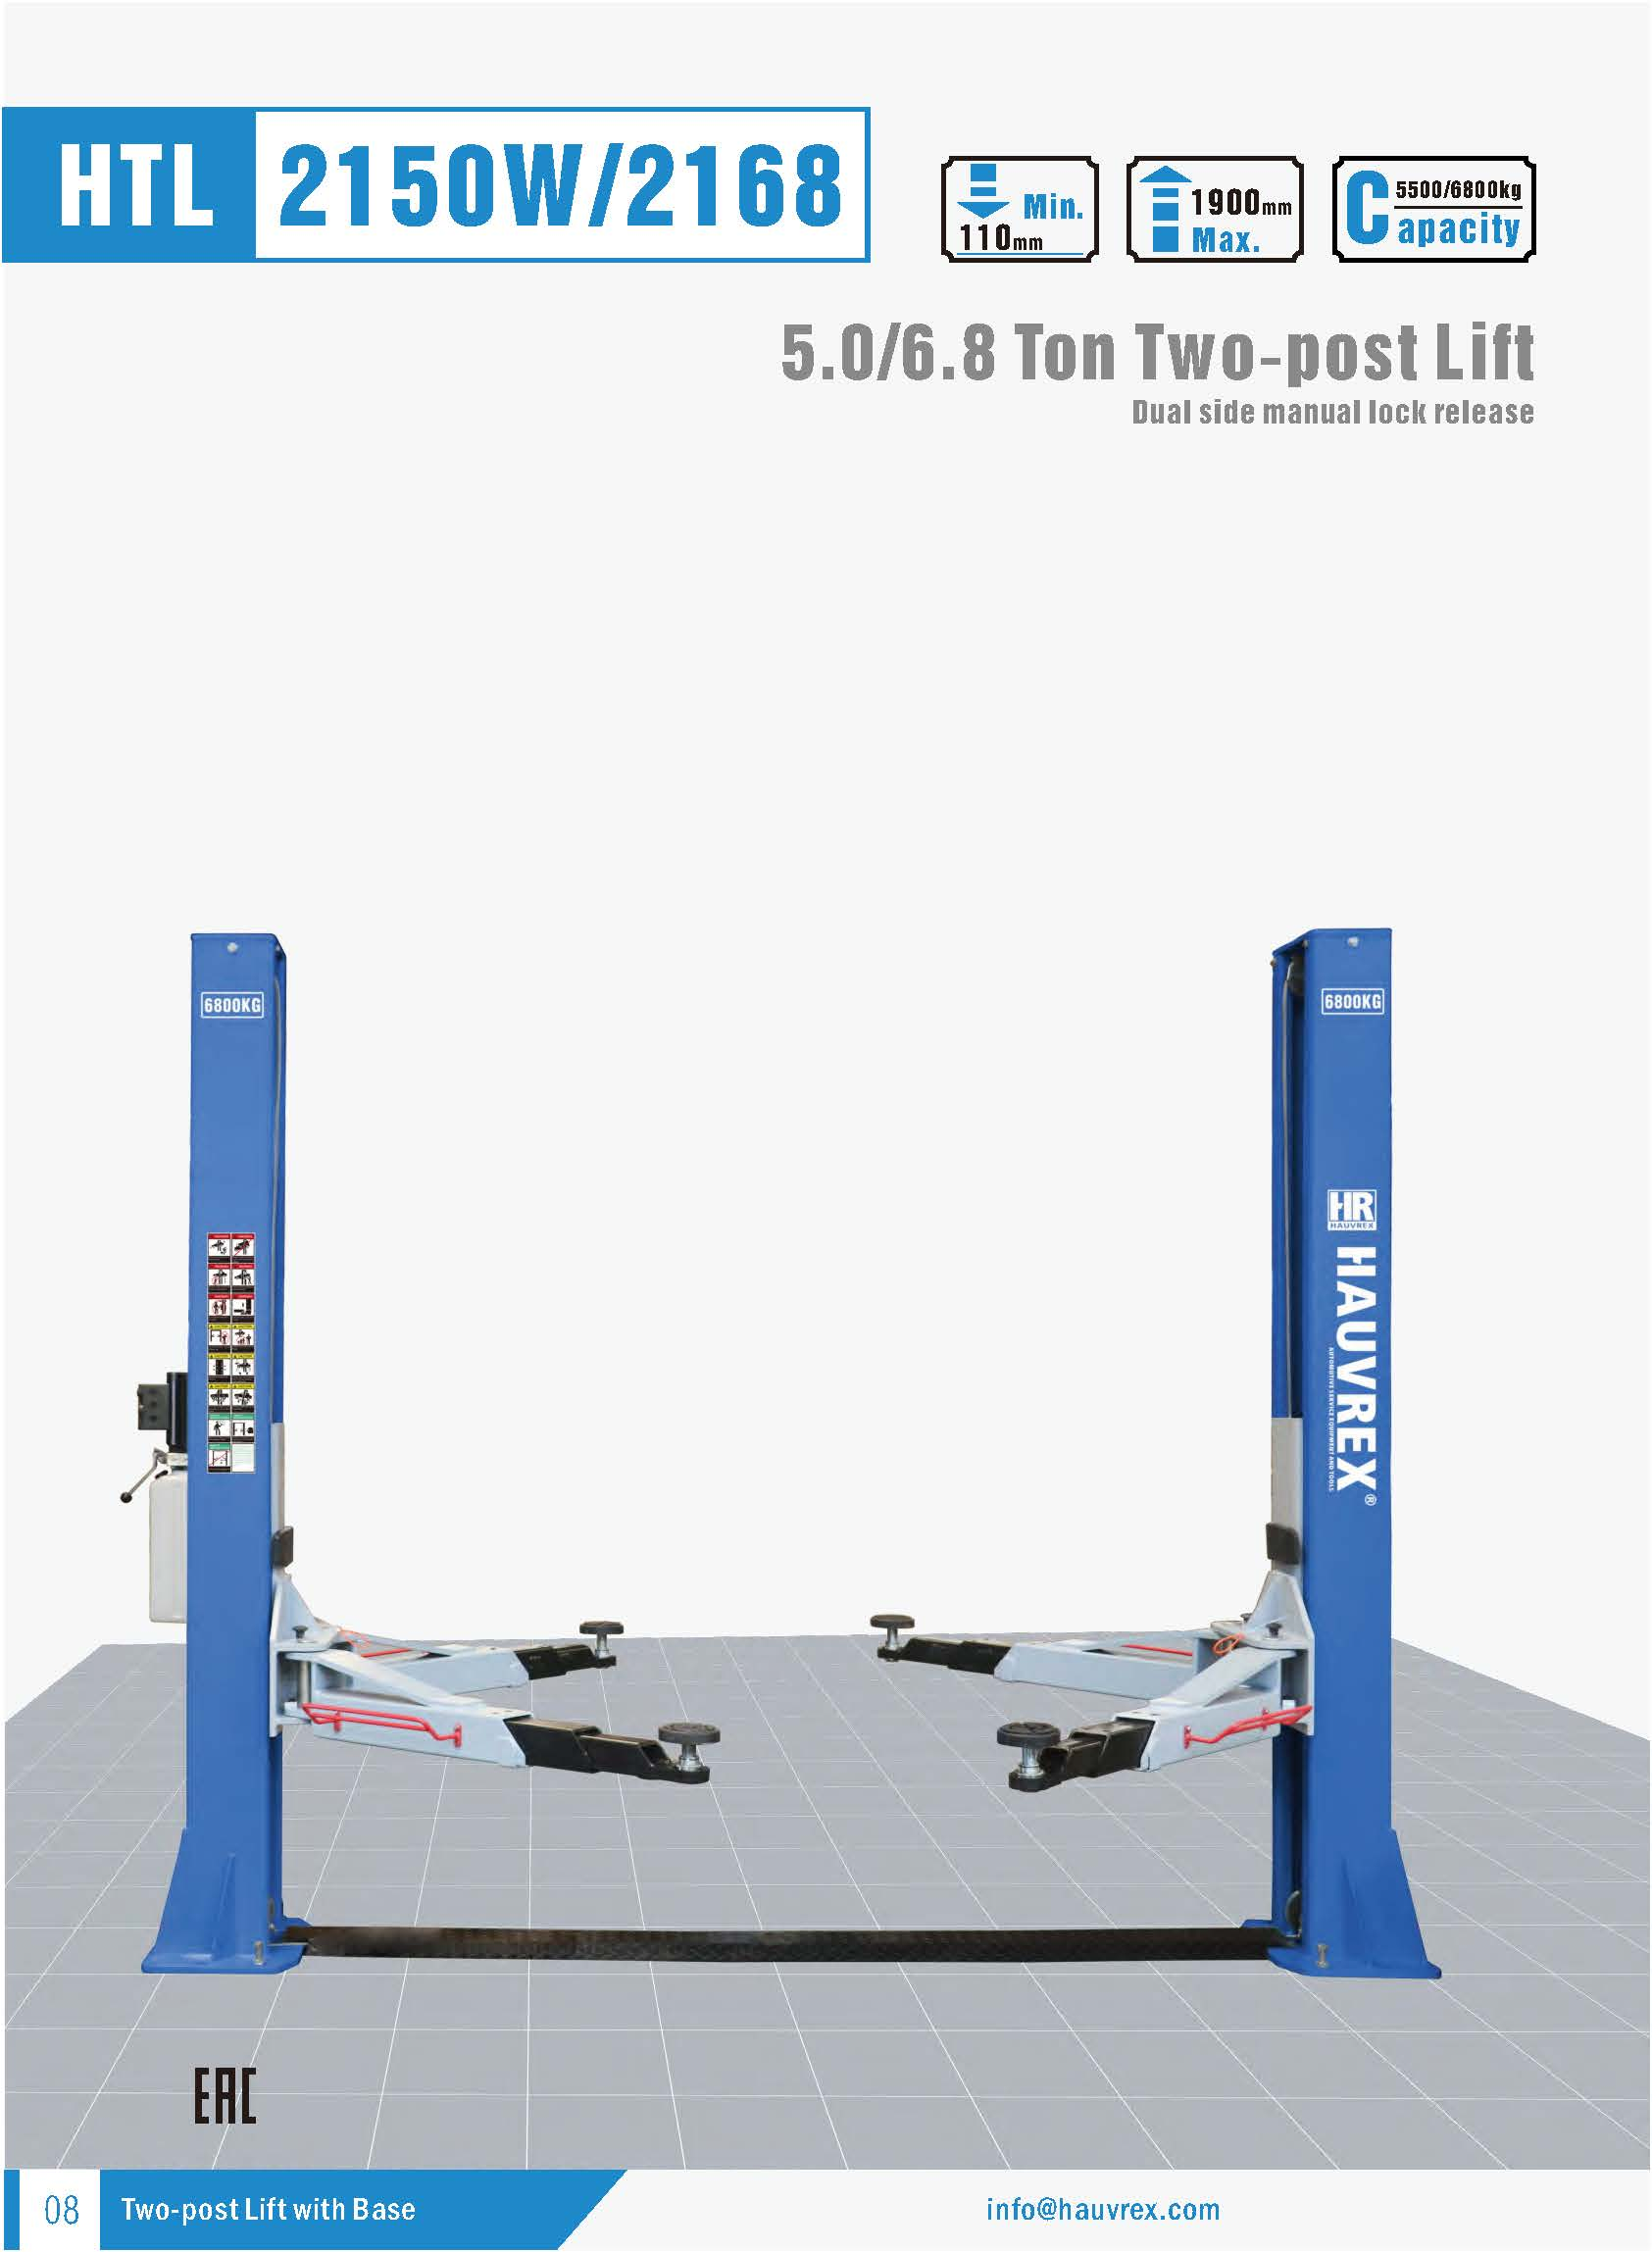 HTL2168 Two-post Lift